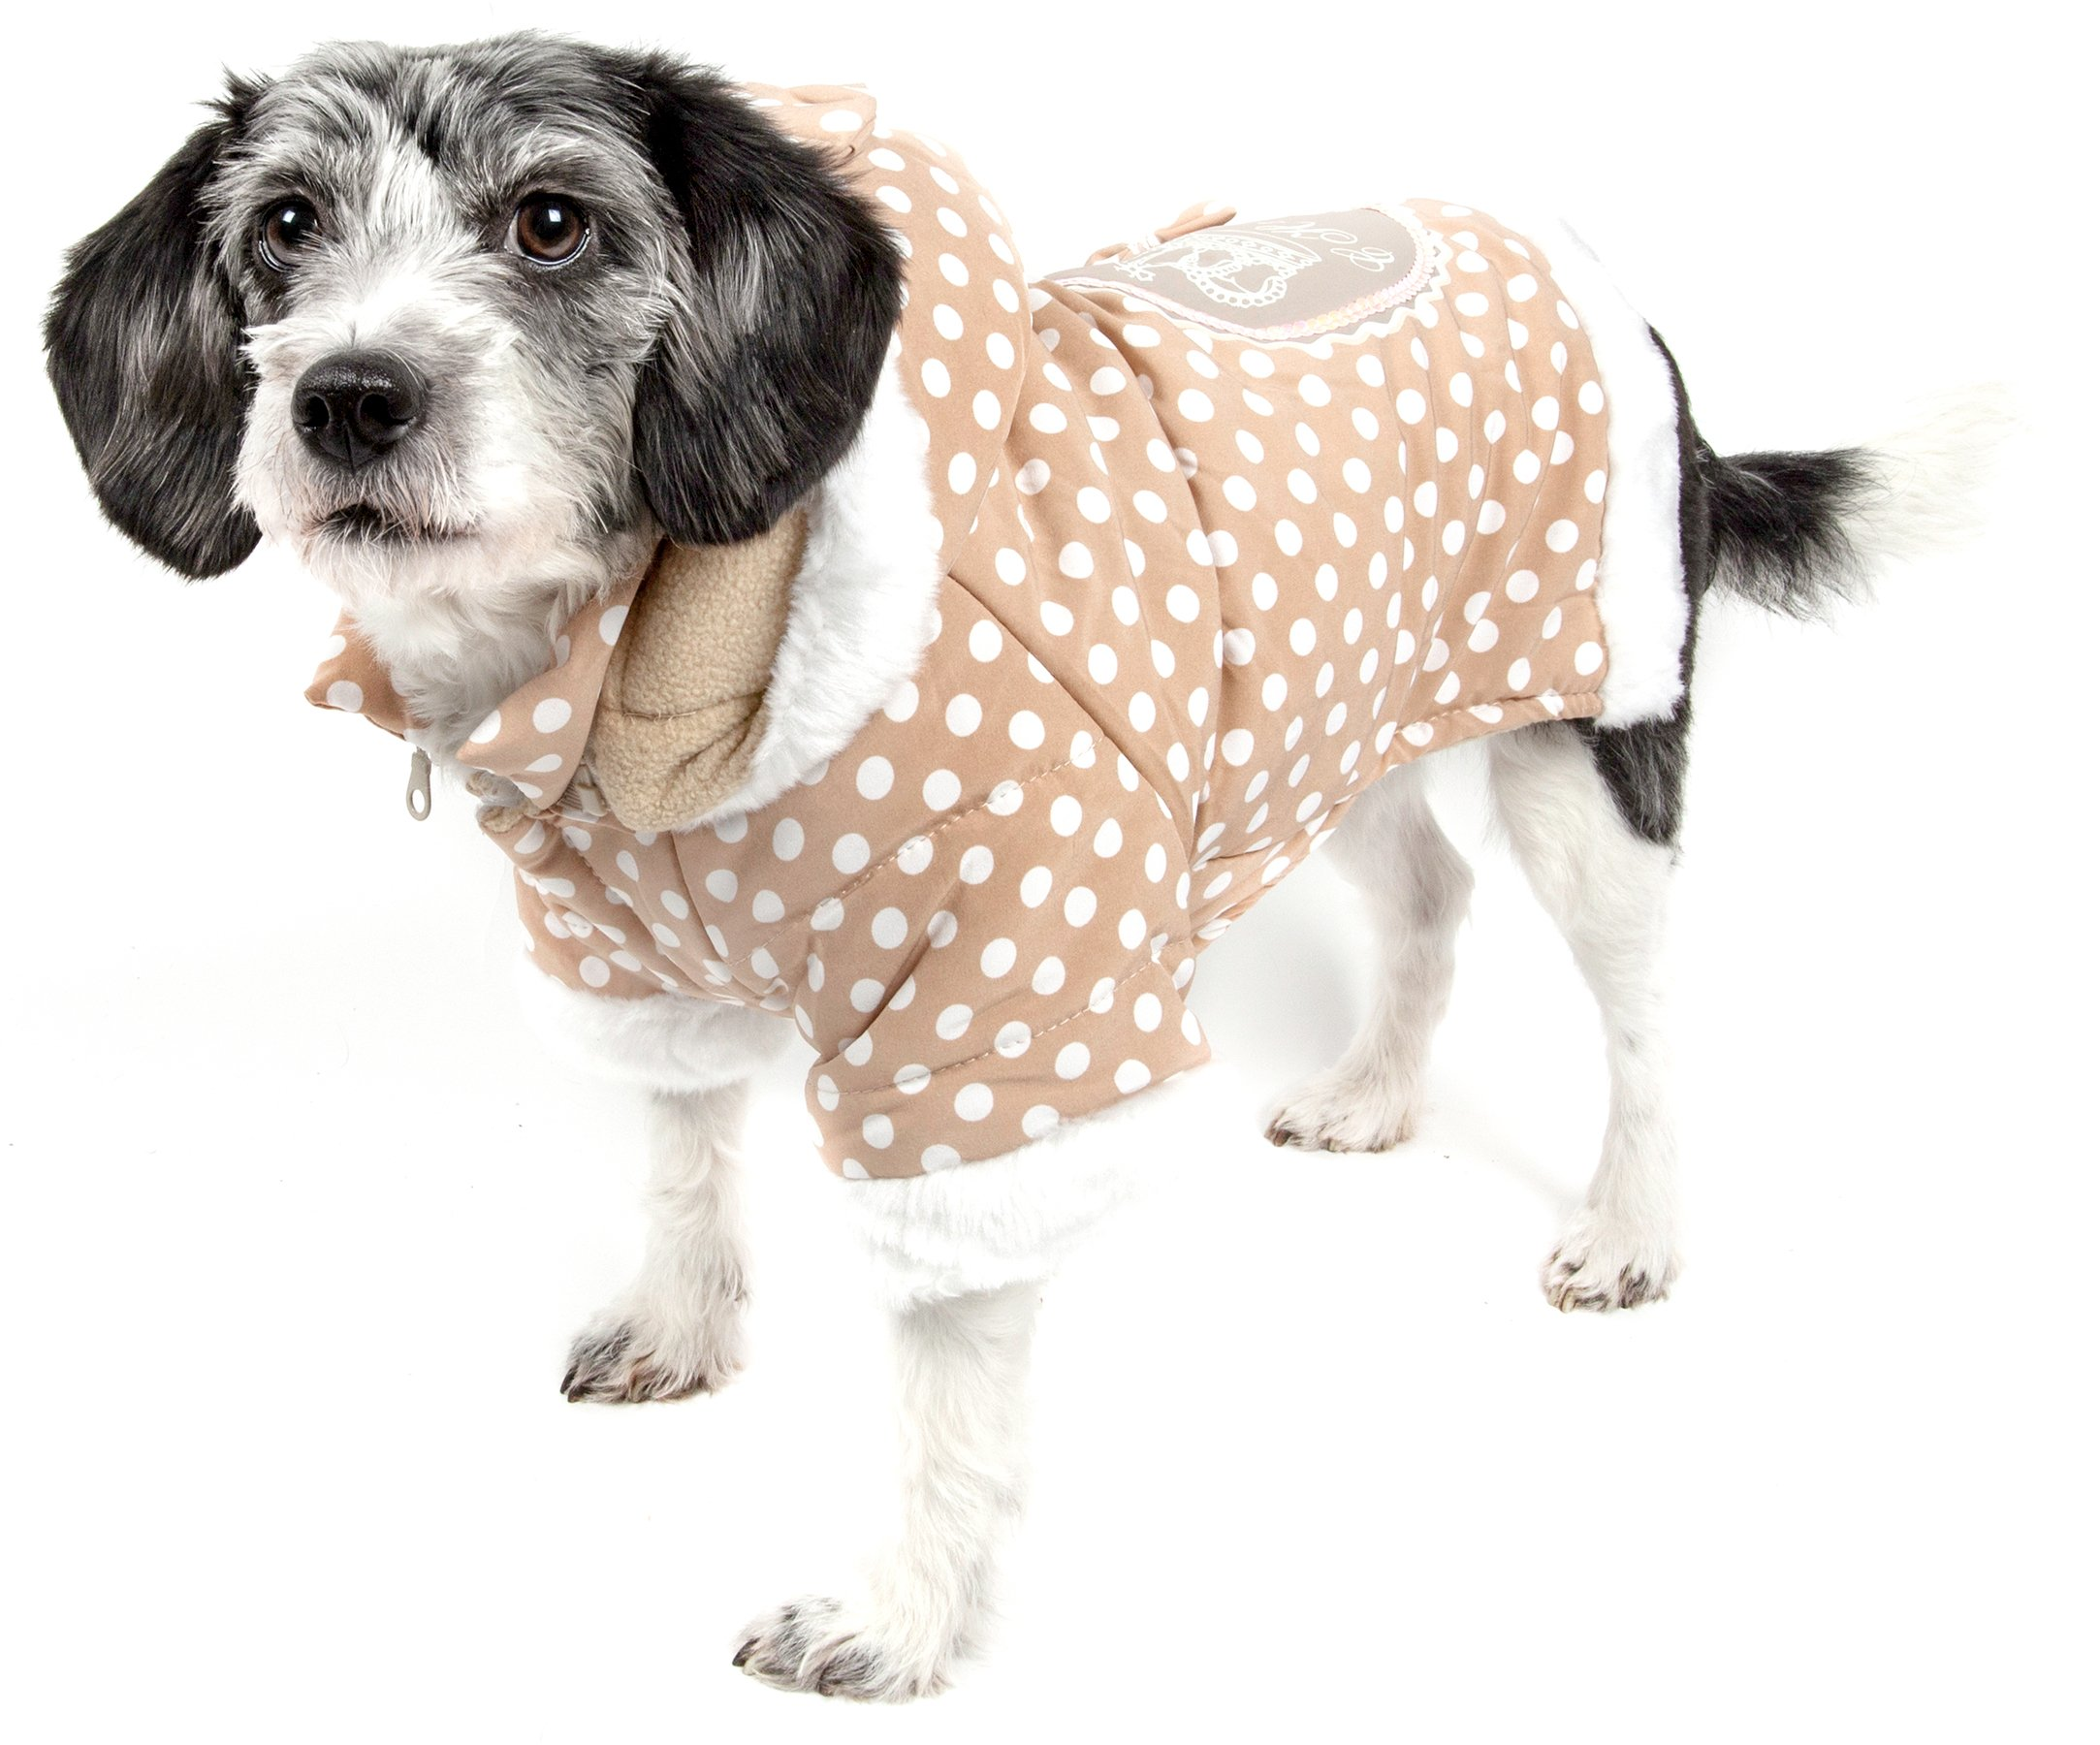 Pet Life Couture-Bow' Polka Dot Designer Fashion Pet Dog Hooded Sweater Hoodie, Small, Brown Polka